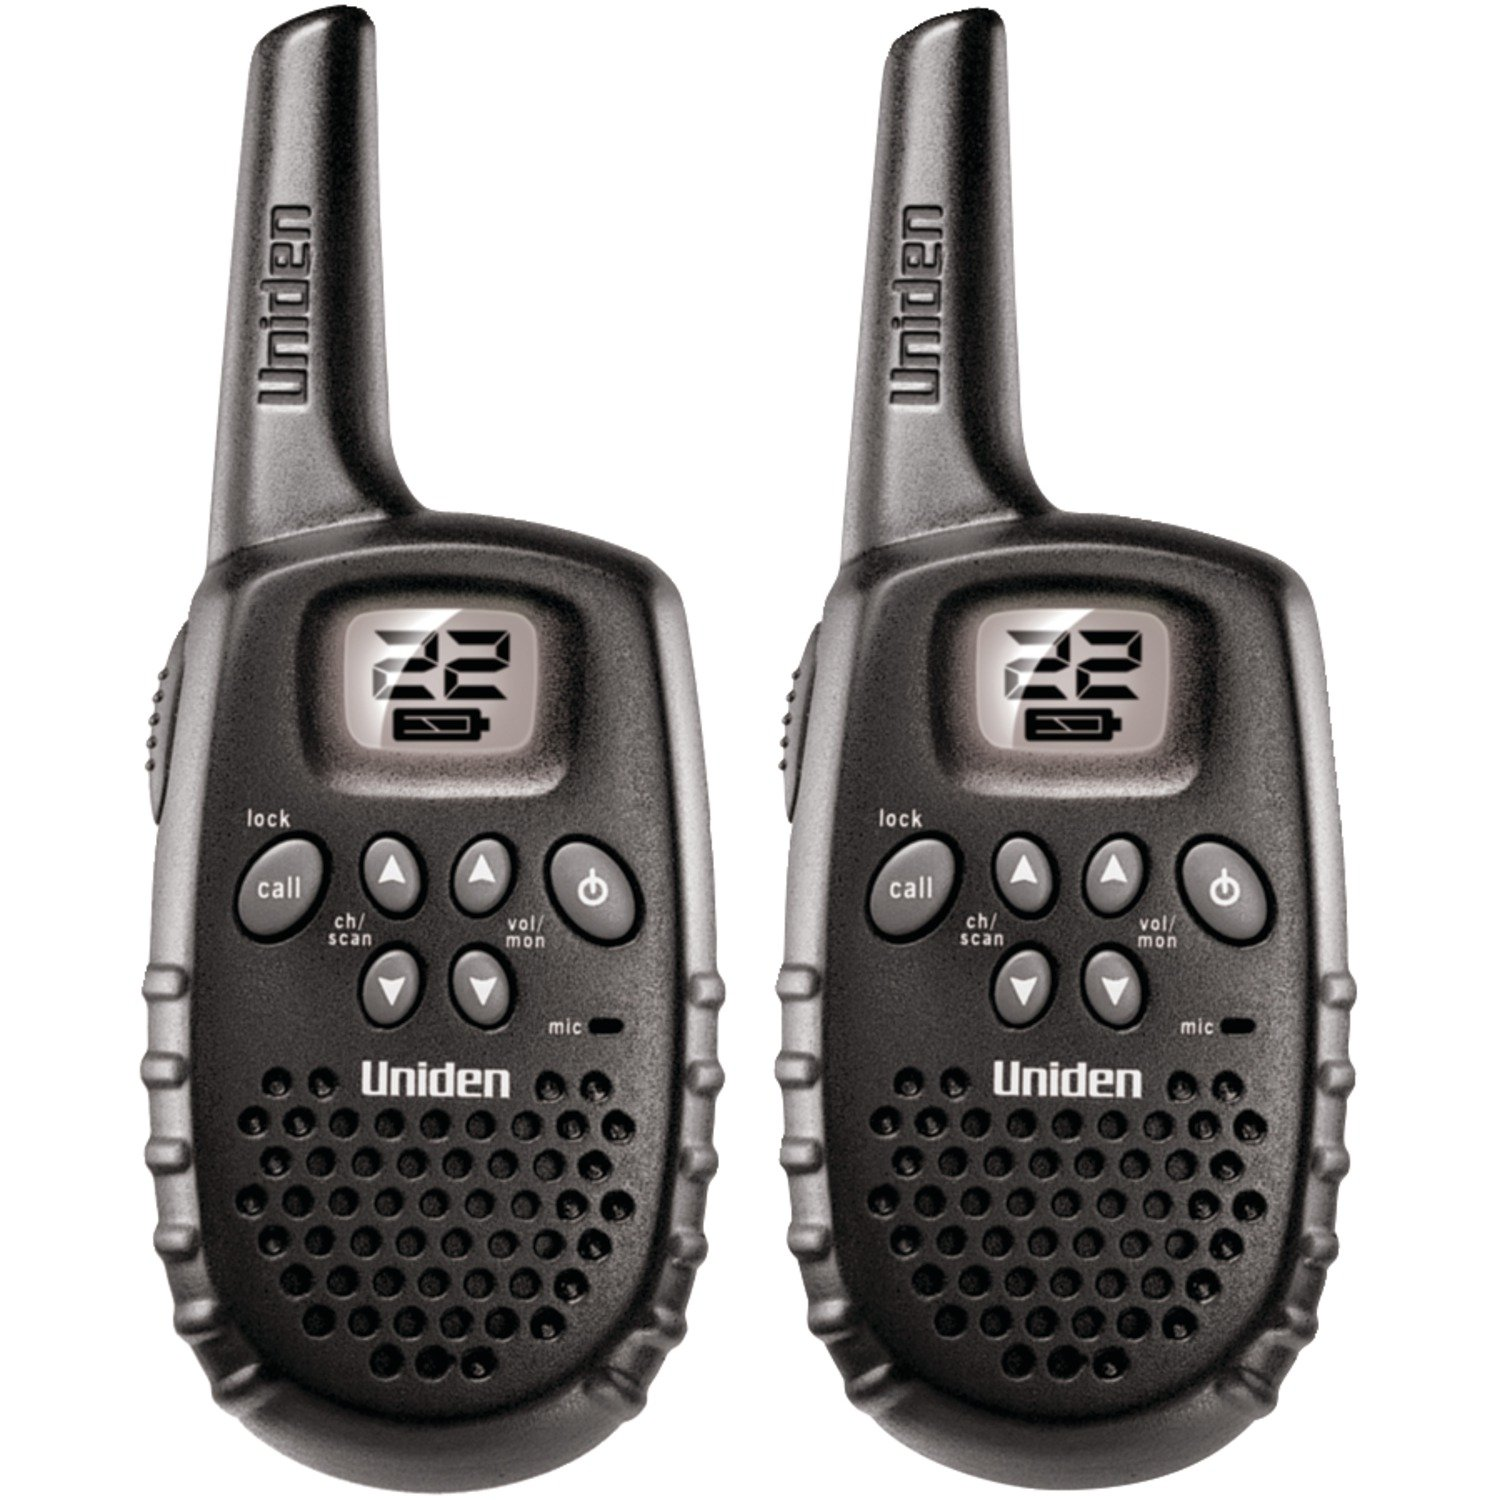 Uniden (GMR1635-2) Up to 16-Mile range, 22 Channels, Battery FRS/GMRS Two-Way Radio Pair. Battery Strength Meter, Keypad Lock, and Channel Scan. Black Color